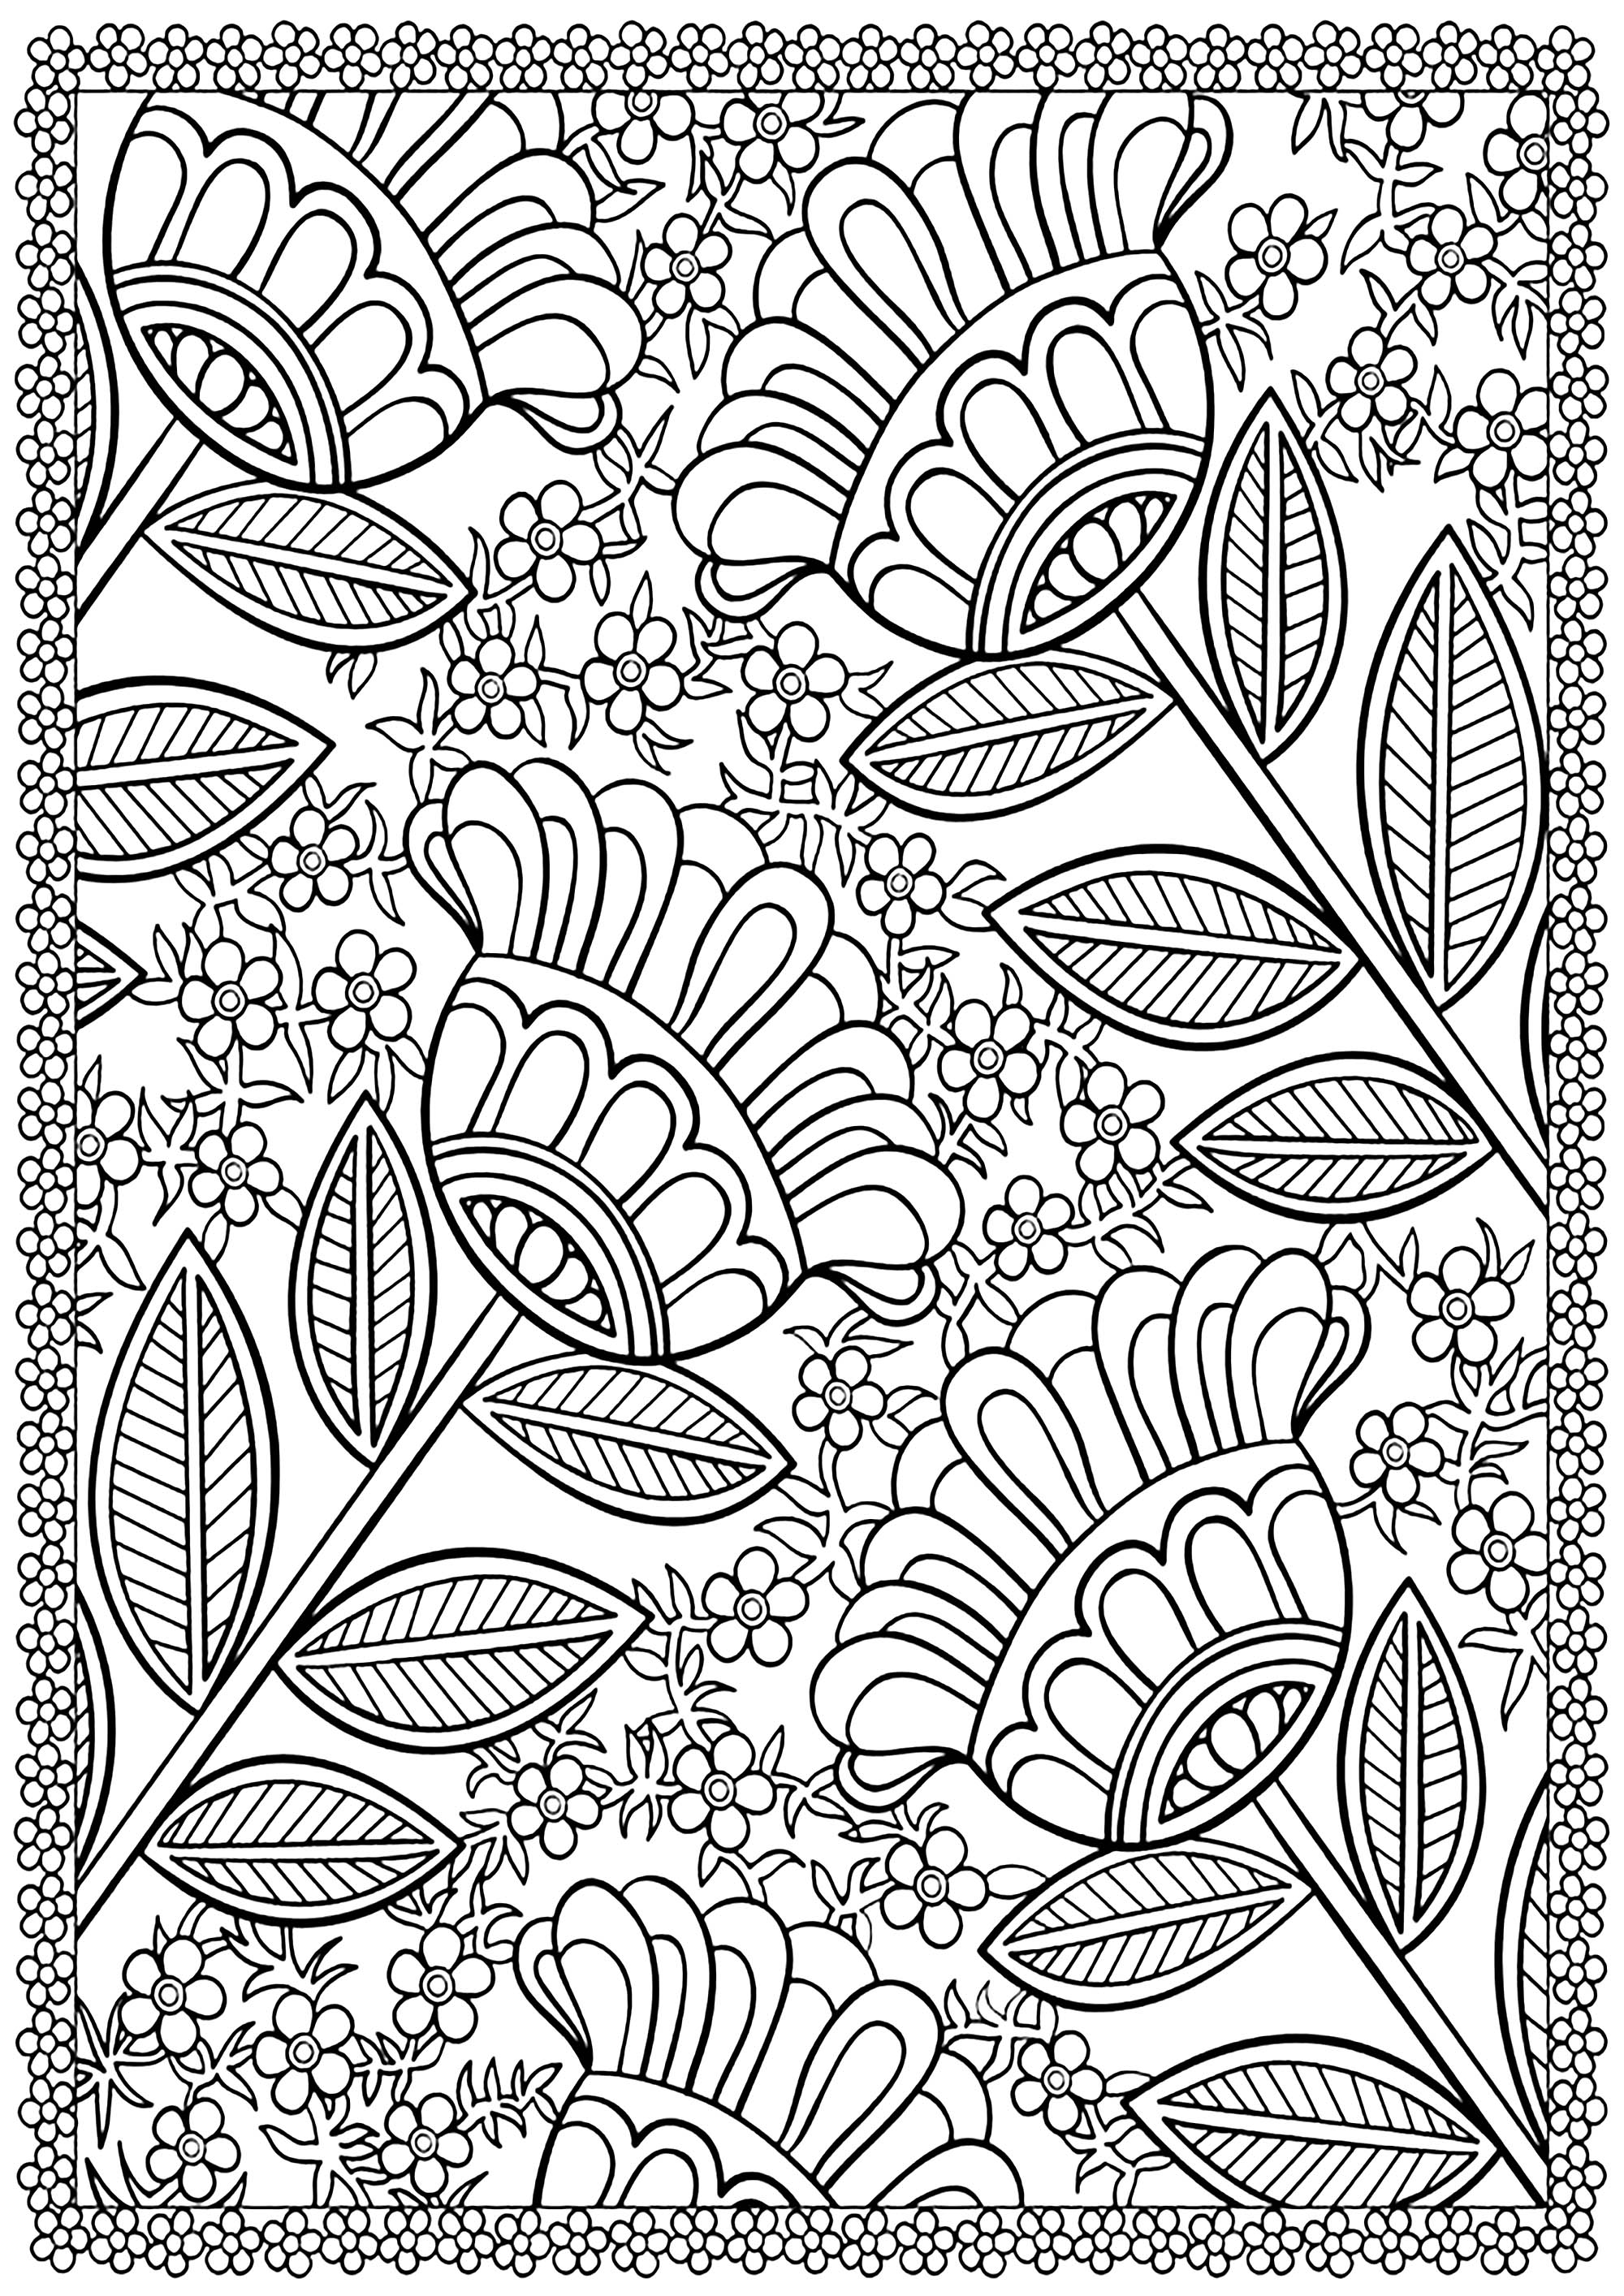 coloring pages for adults hd line artsy free adult coloring pages for adults hd hd pages adults coloring for hd